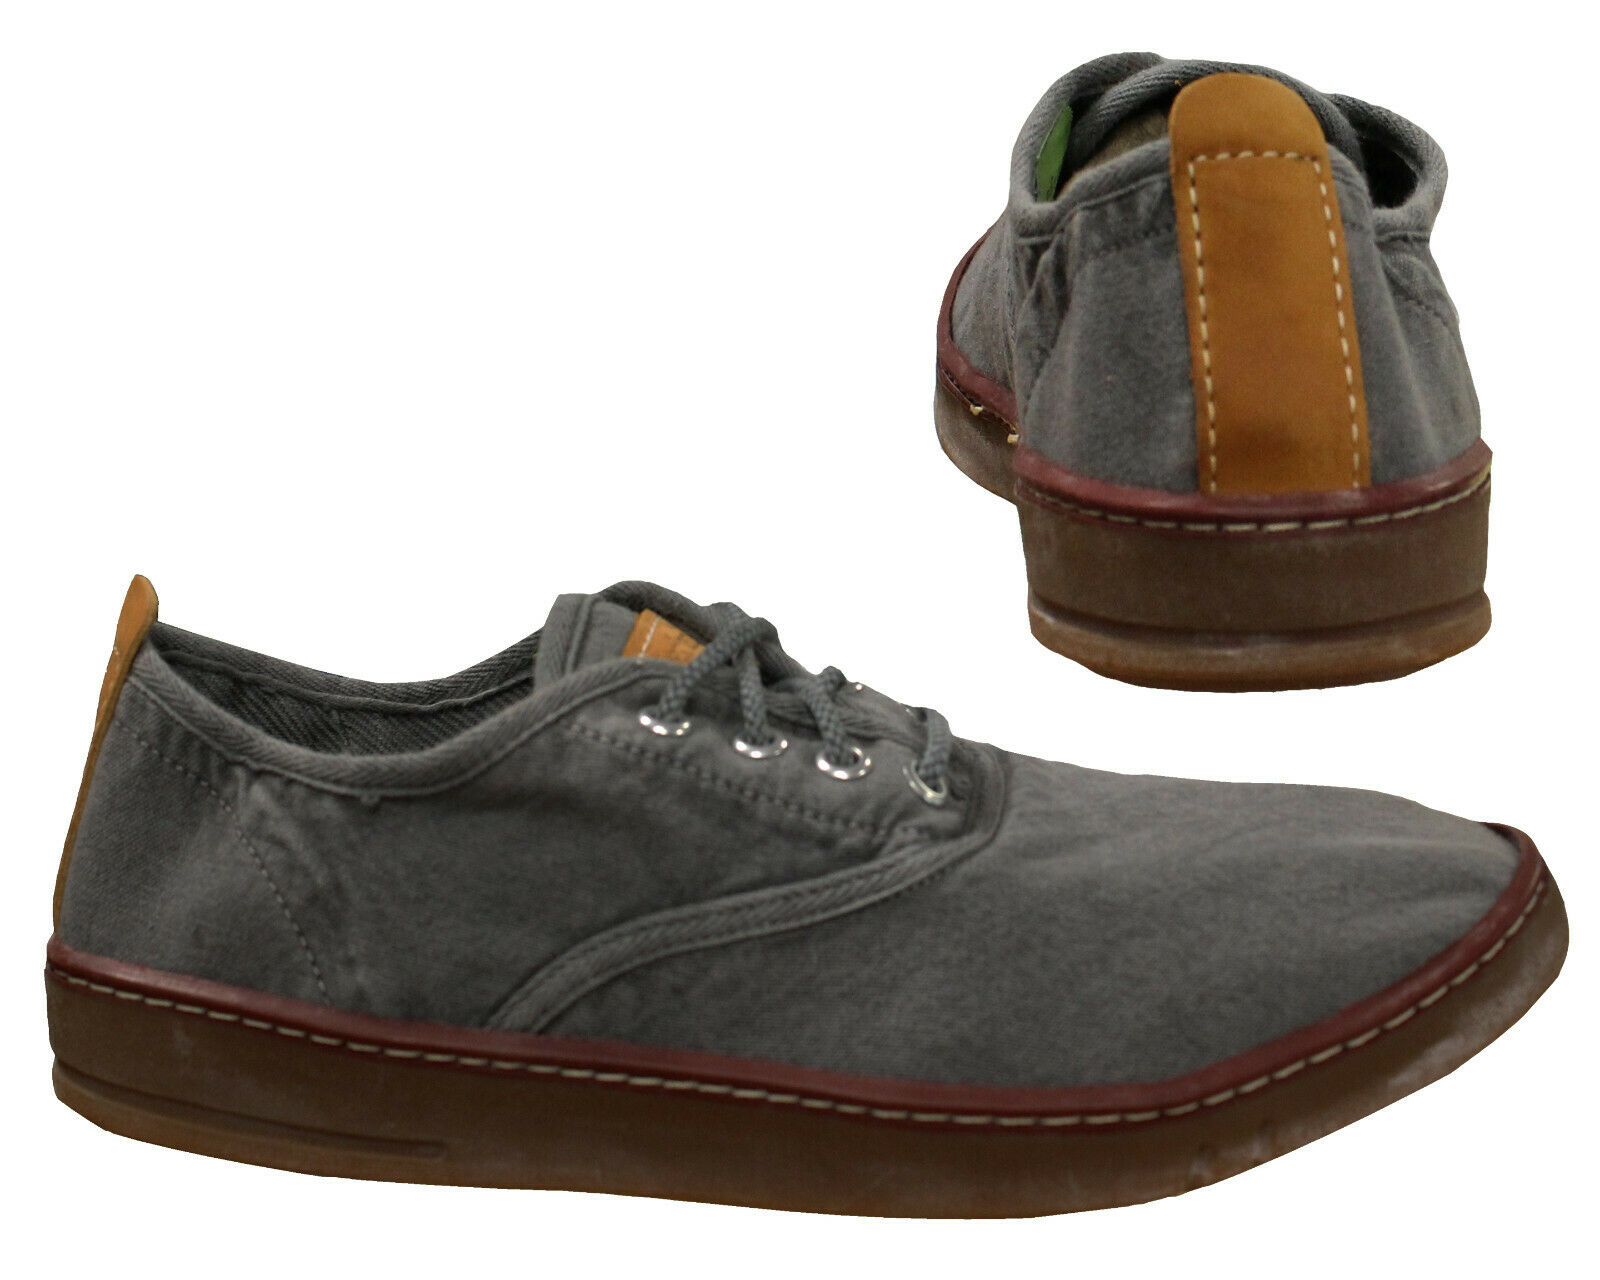 Détails sur Timberland Earthkeepers Hookset Toile Homme Lacet Chaussures Gris Bas 5309A B90E